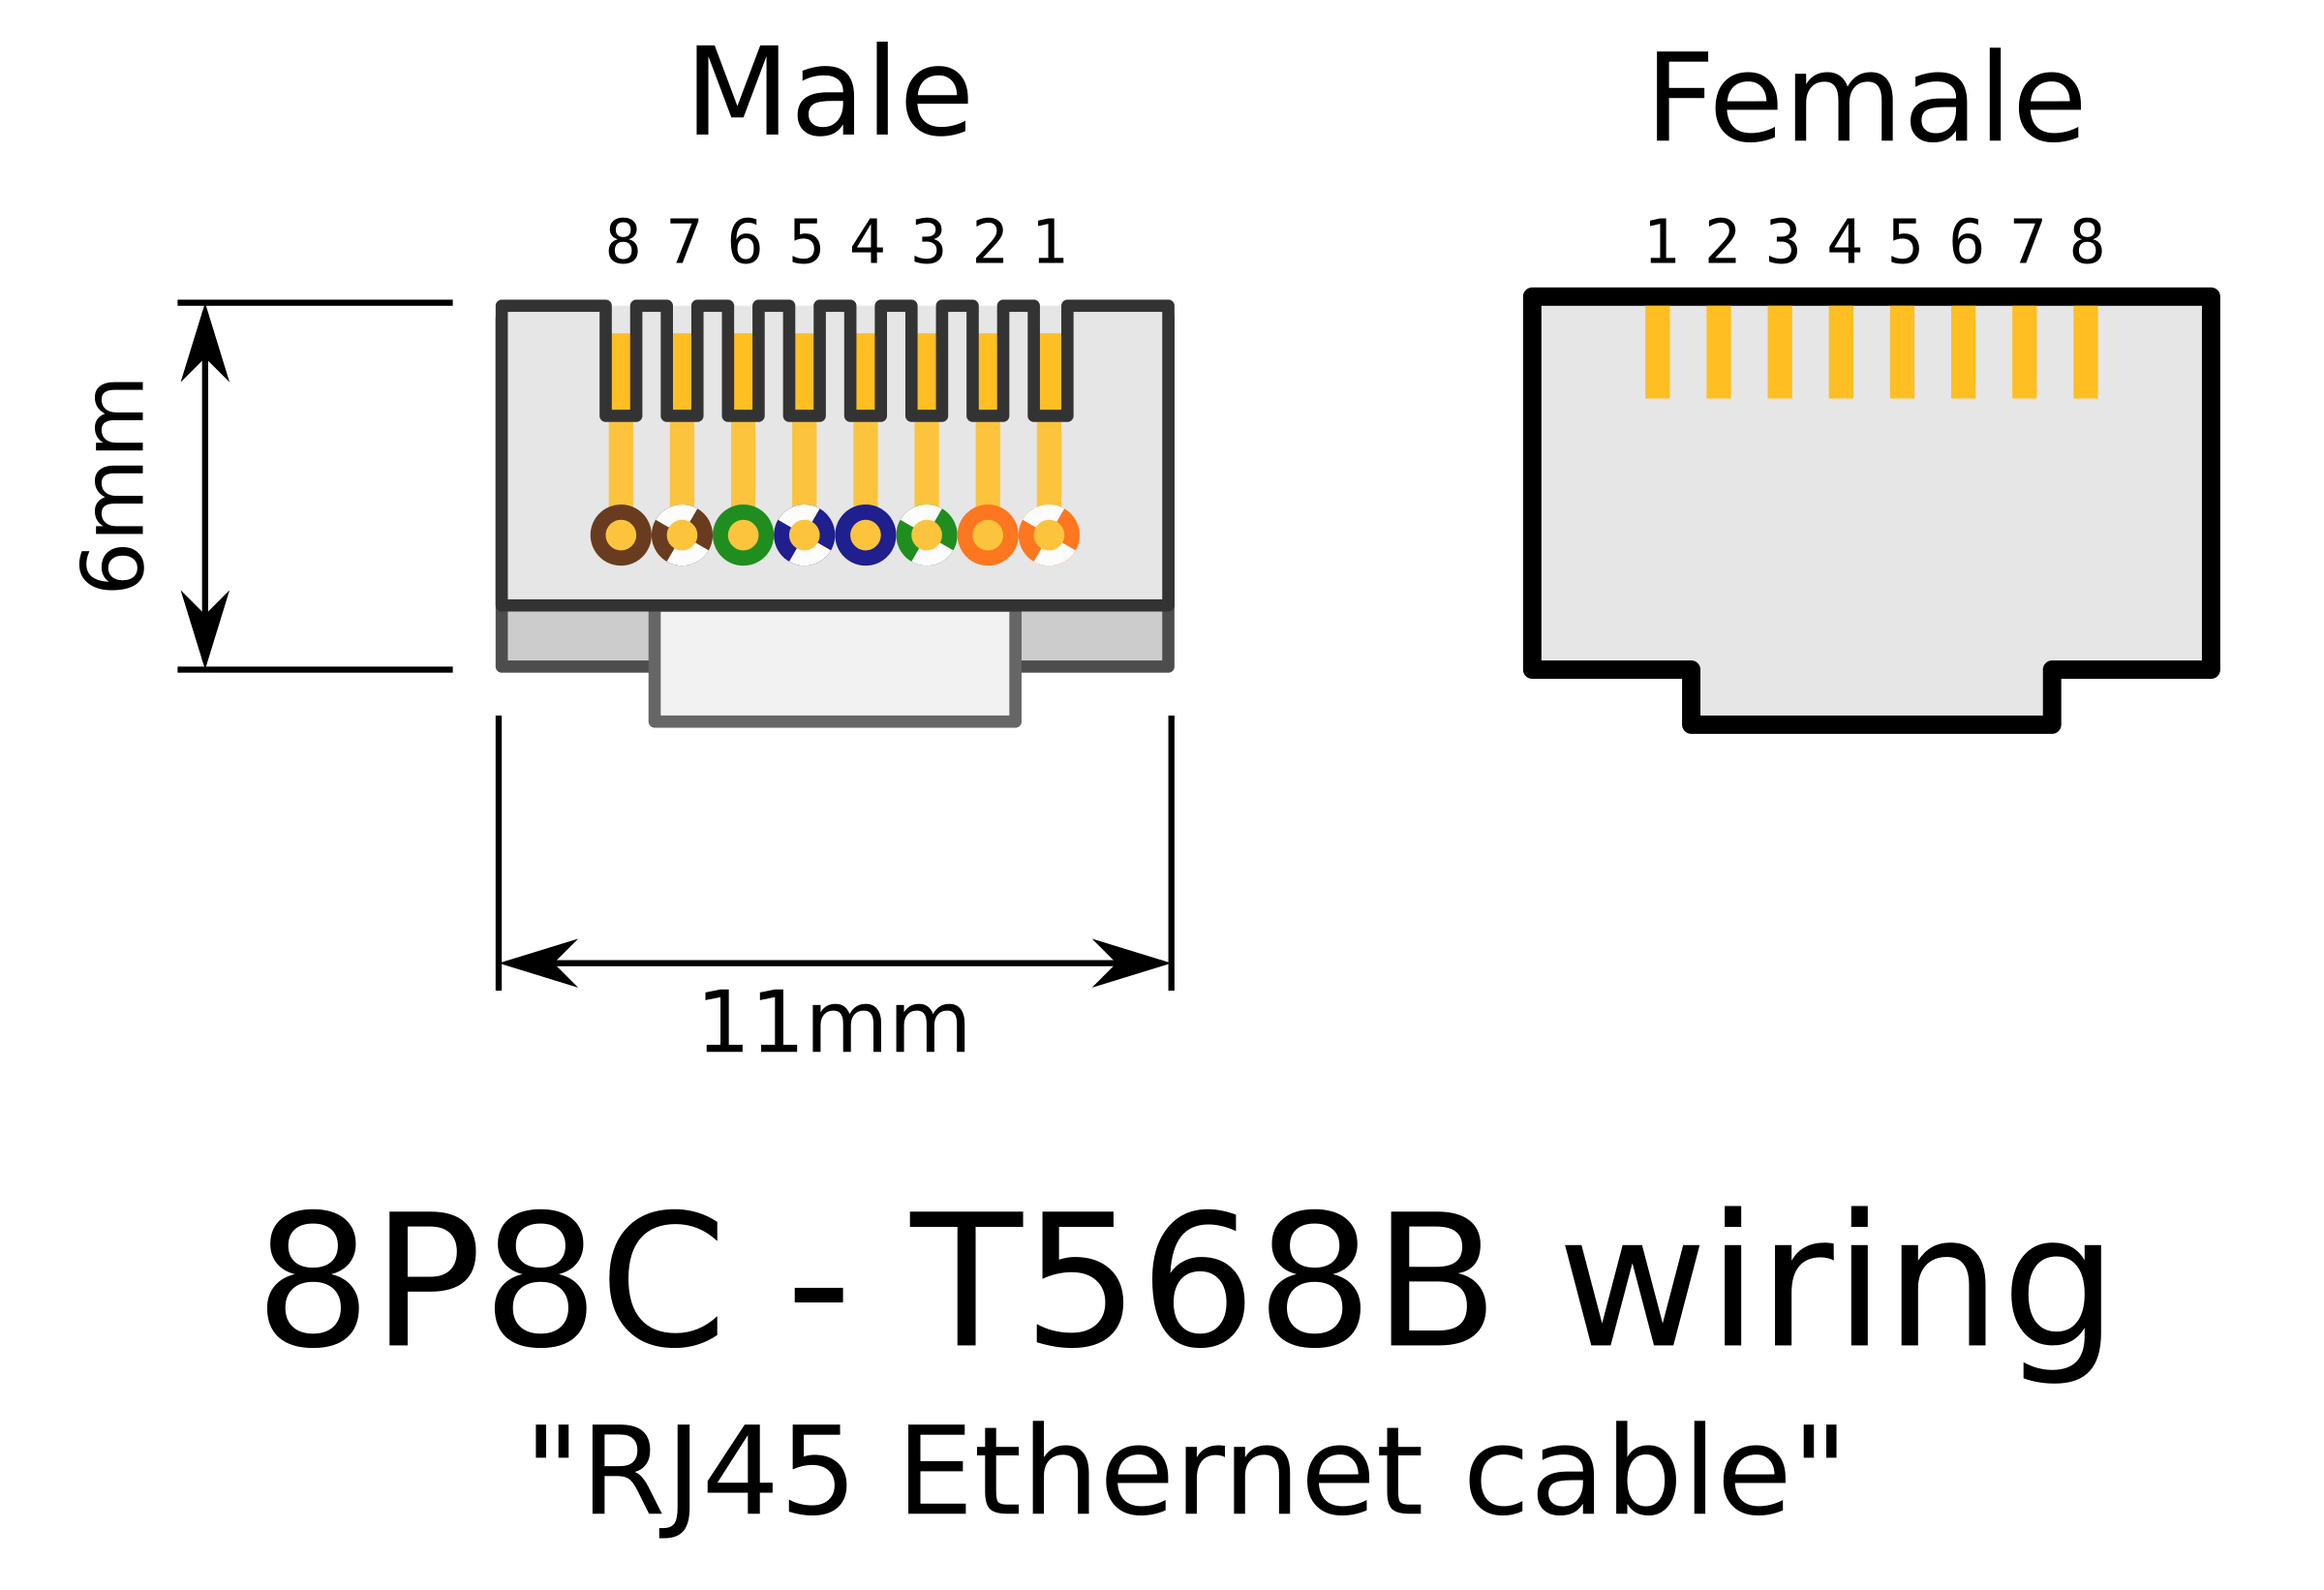 Rj45 Female Connector Wiring Diagram 36 Images Ethernet Cable Plug